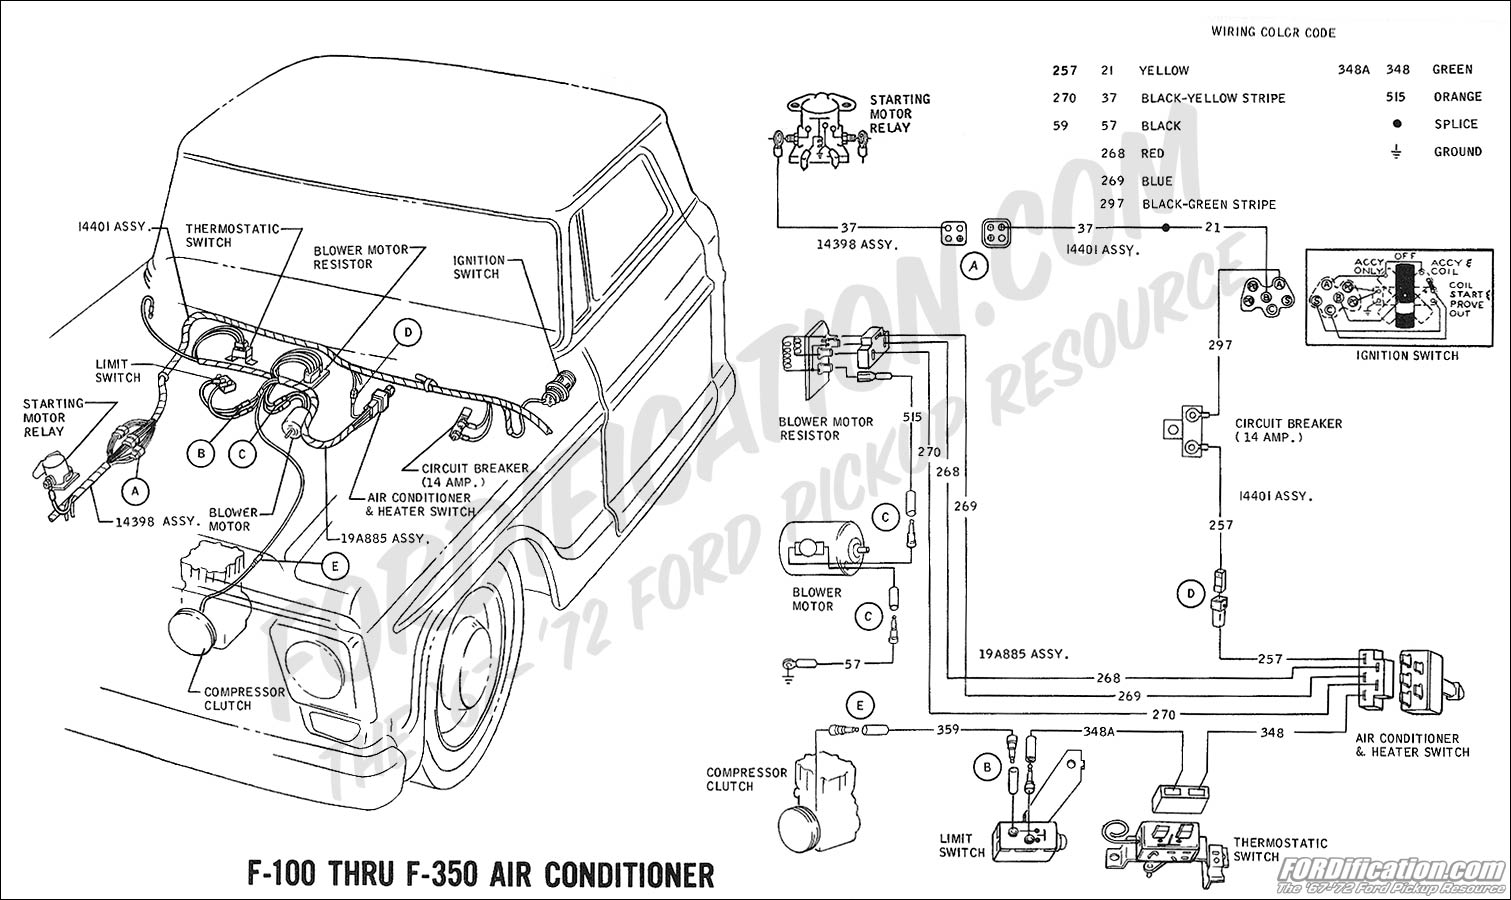 17jo0 Fuse Diagram 1985 Ford F150 moreover Bypassing The   Gauge Question About The Mad Electrical Method additionally Schematics h furthermore 1825199 Need Fuse Help further Forum posts. on 1978 corvette fuse panel diagram